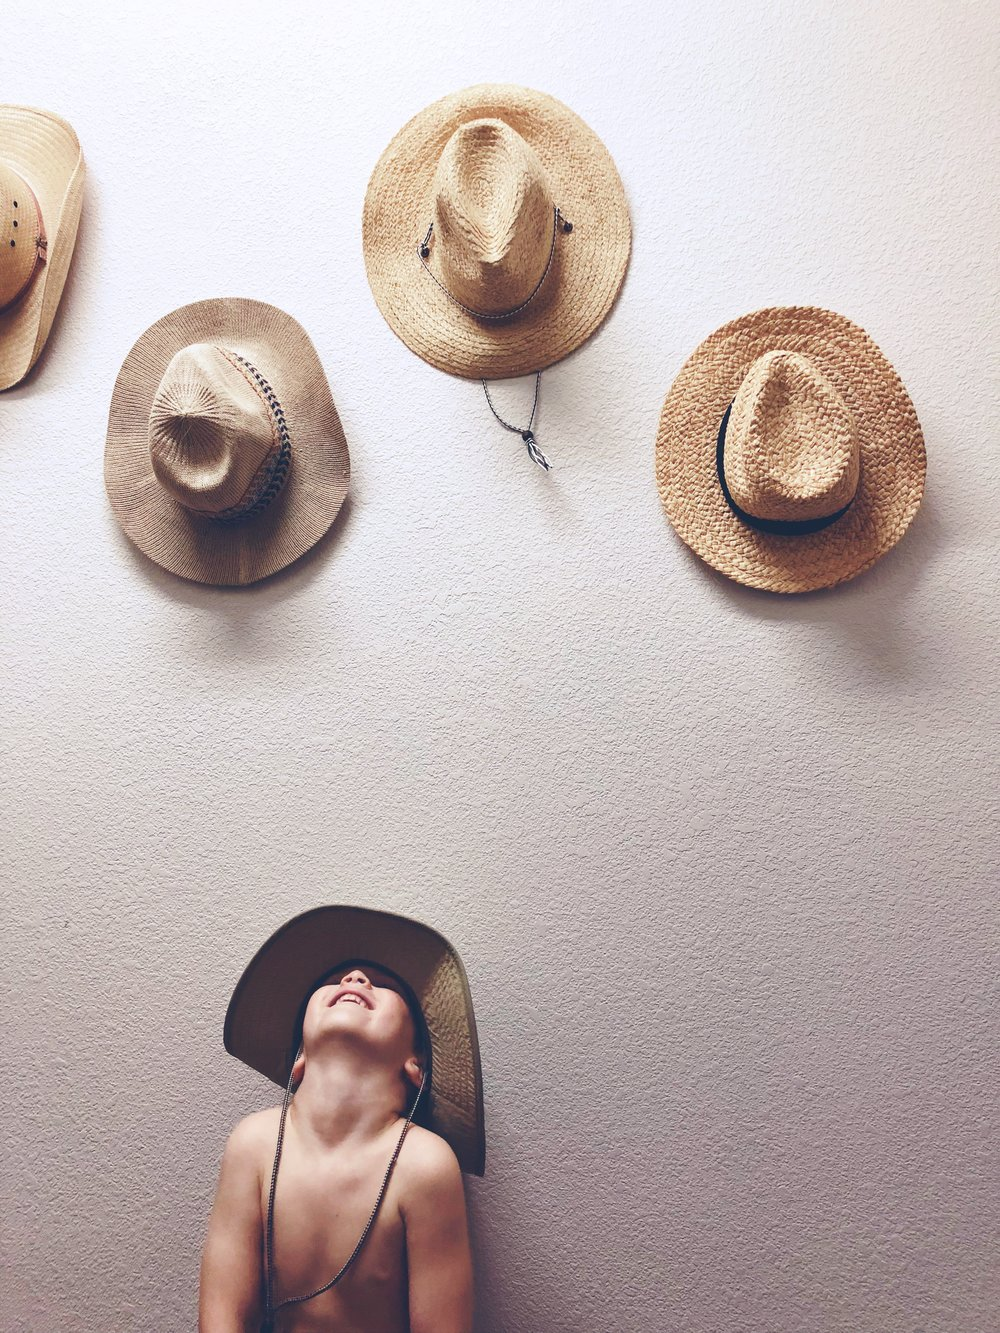 hats decorating a laundry room wall.  Lovely Matters blog - Lovely links in April - Heather Walker Photography